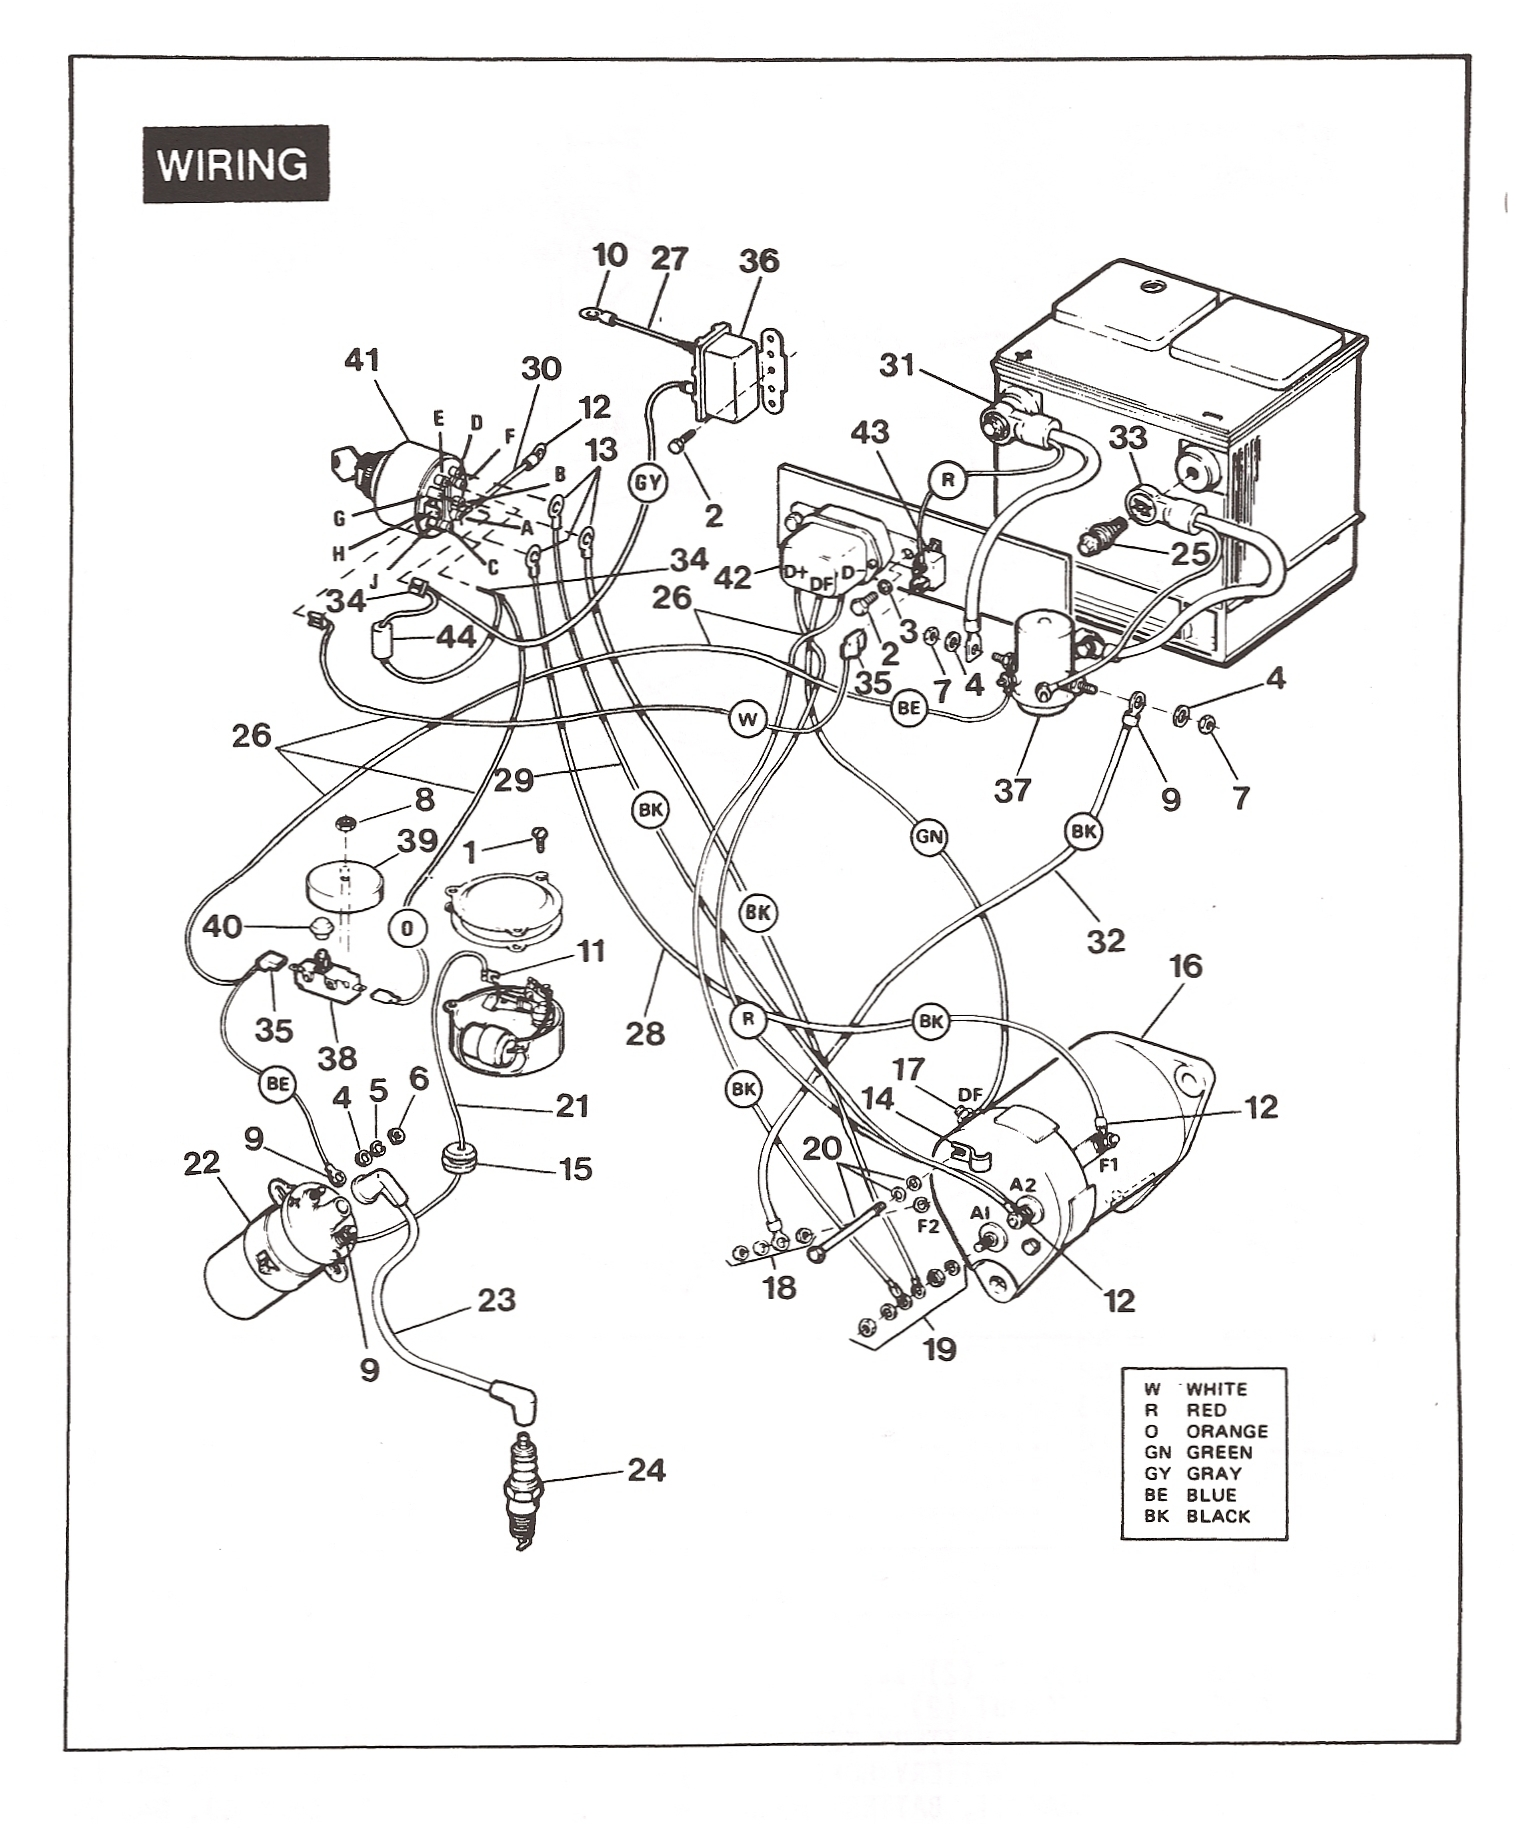 yamaha electric golf cart wiring diagram the wiring diagram wiring diagram for a 82 ezgo gas golf cart wiring discover your wiring